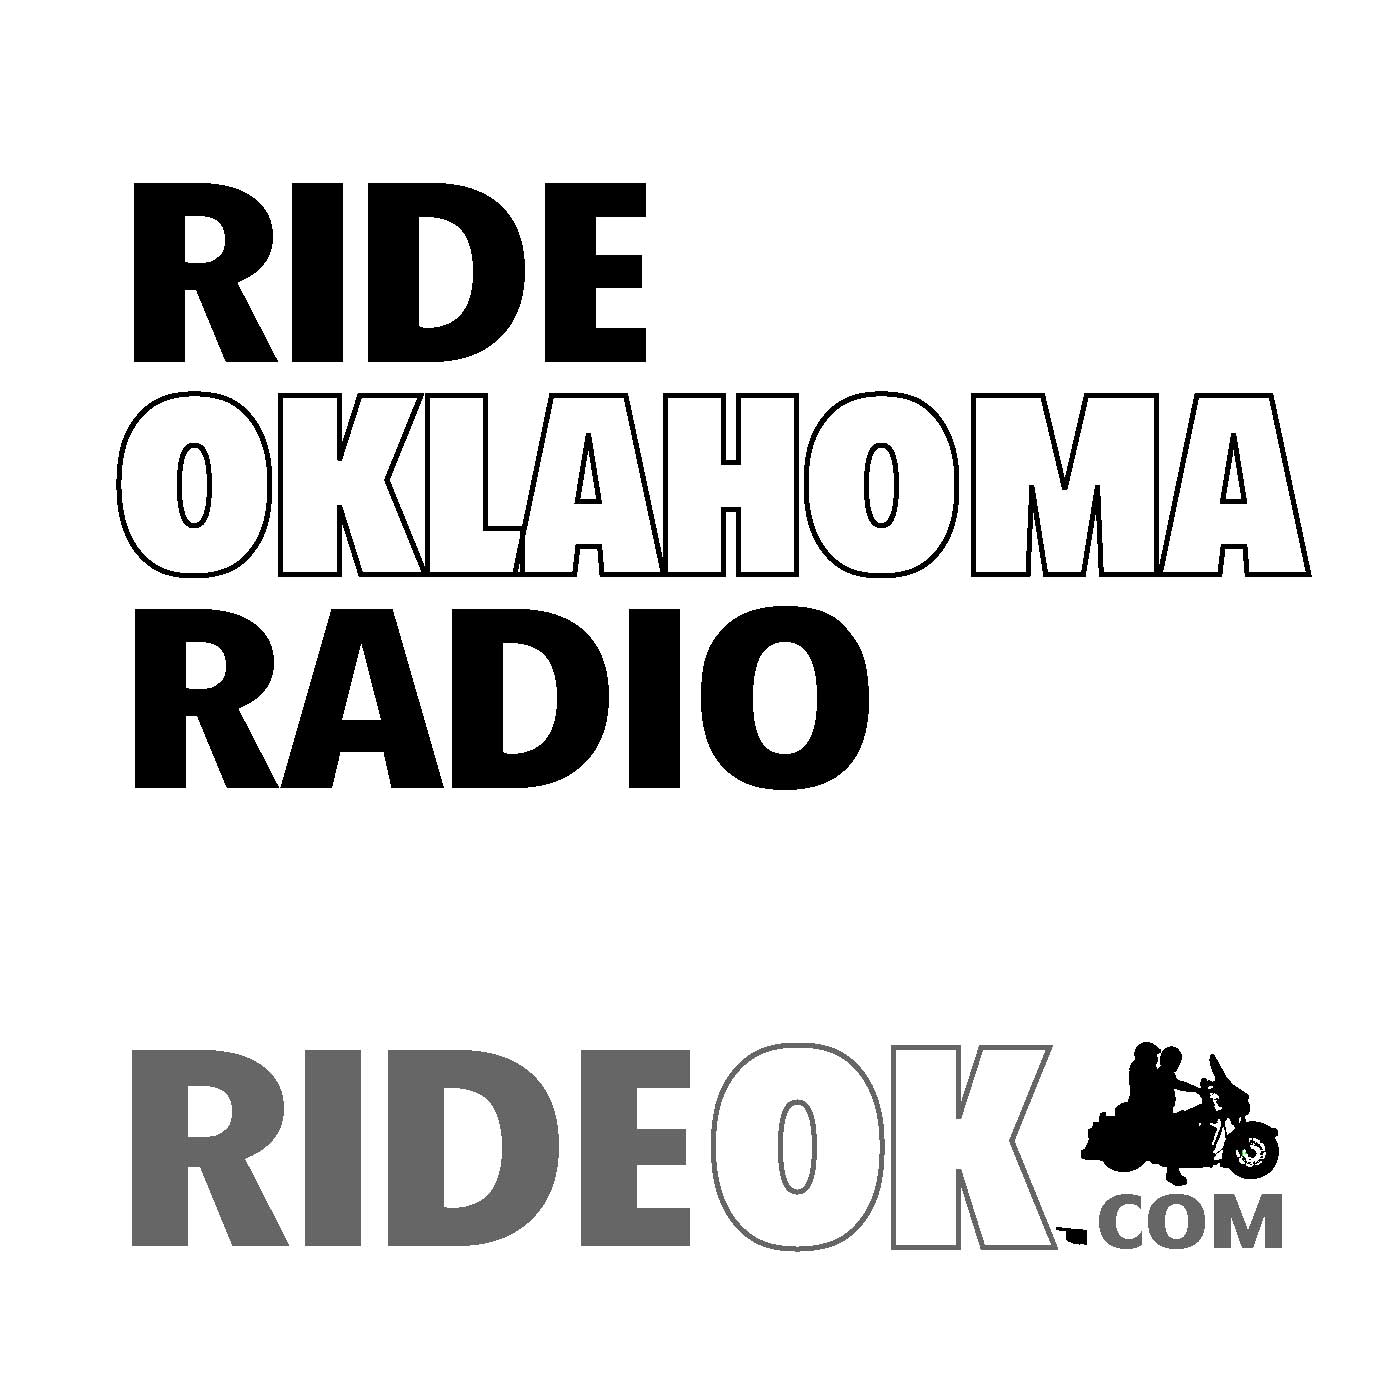 Ride Oklahoma Radio